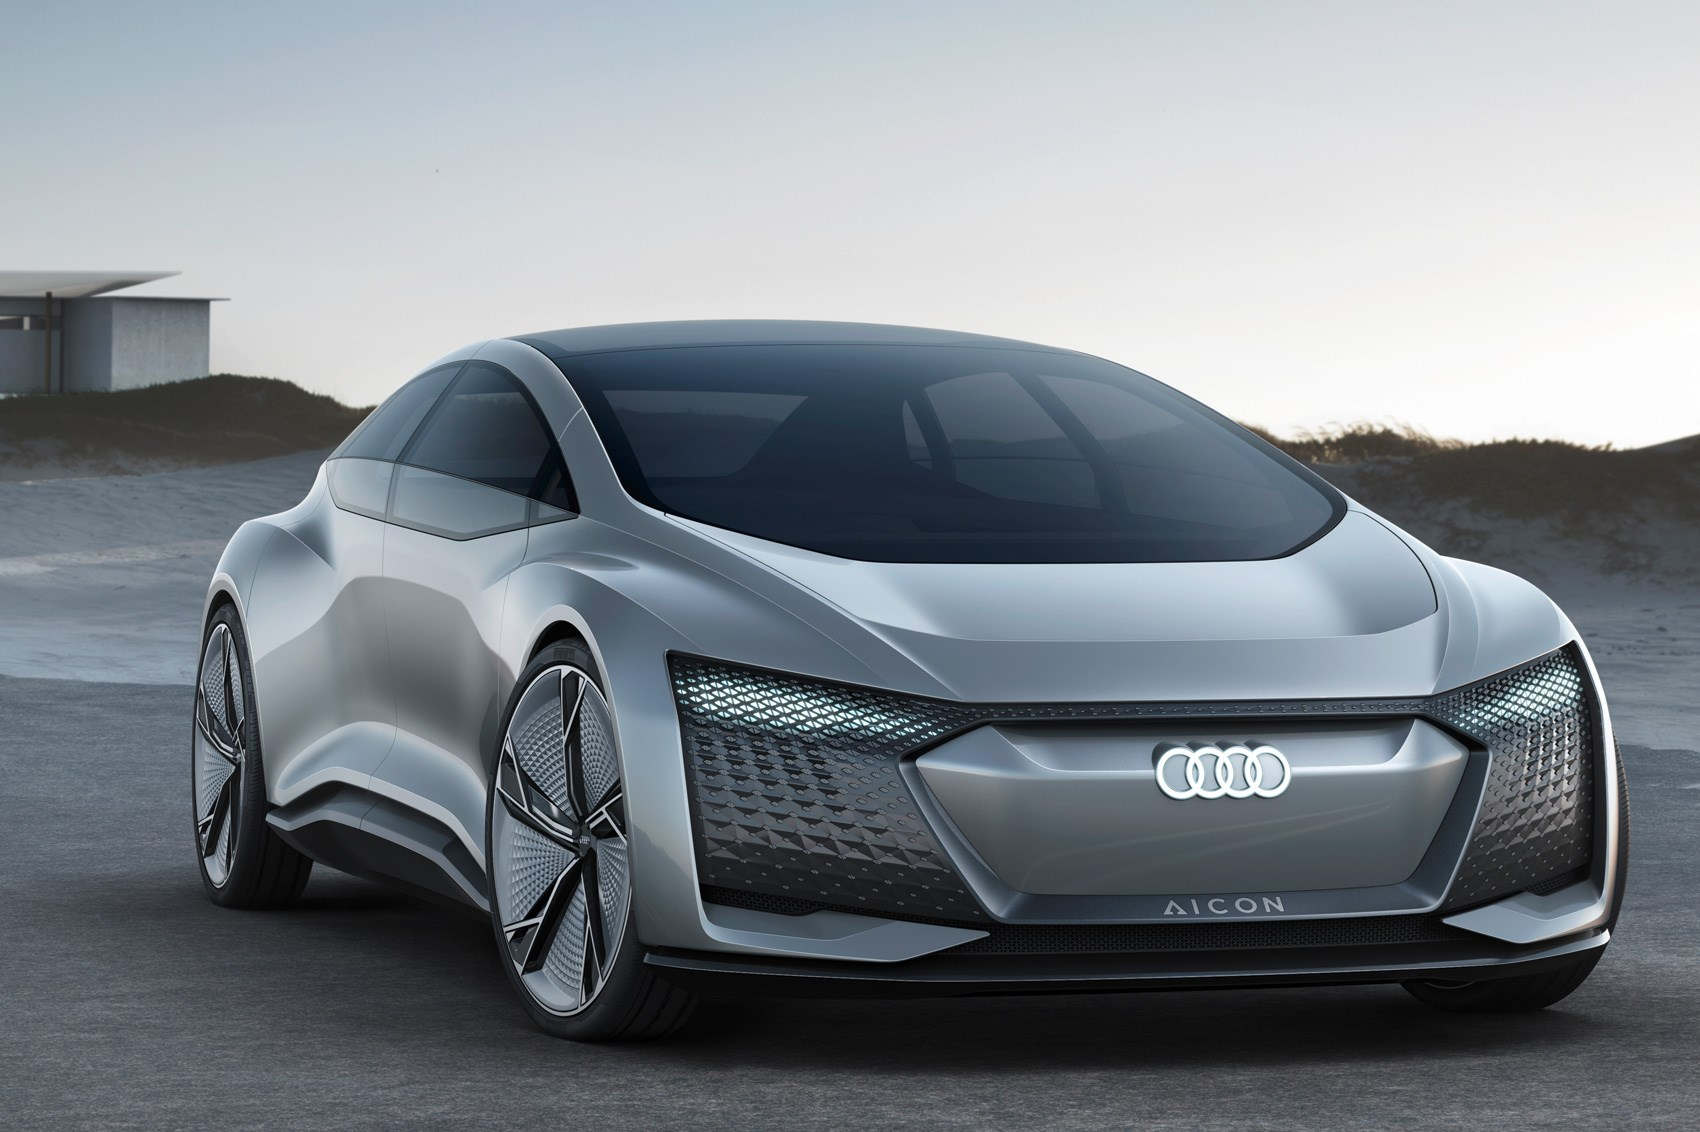 2017 Audi Aicon Concept Car Showing The Future Of Autonomous Electric Connected Audis